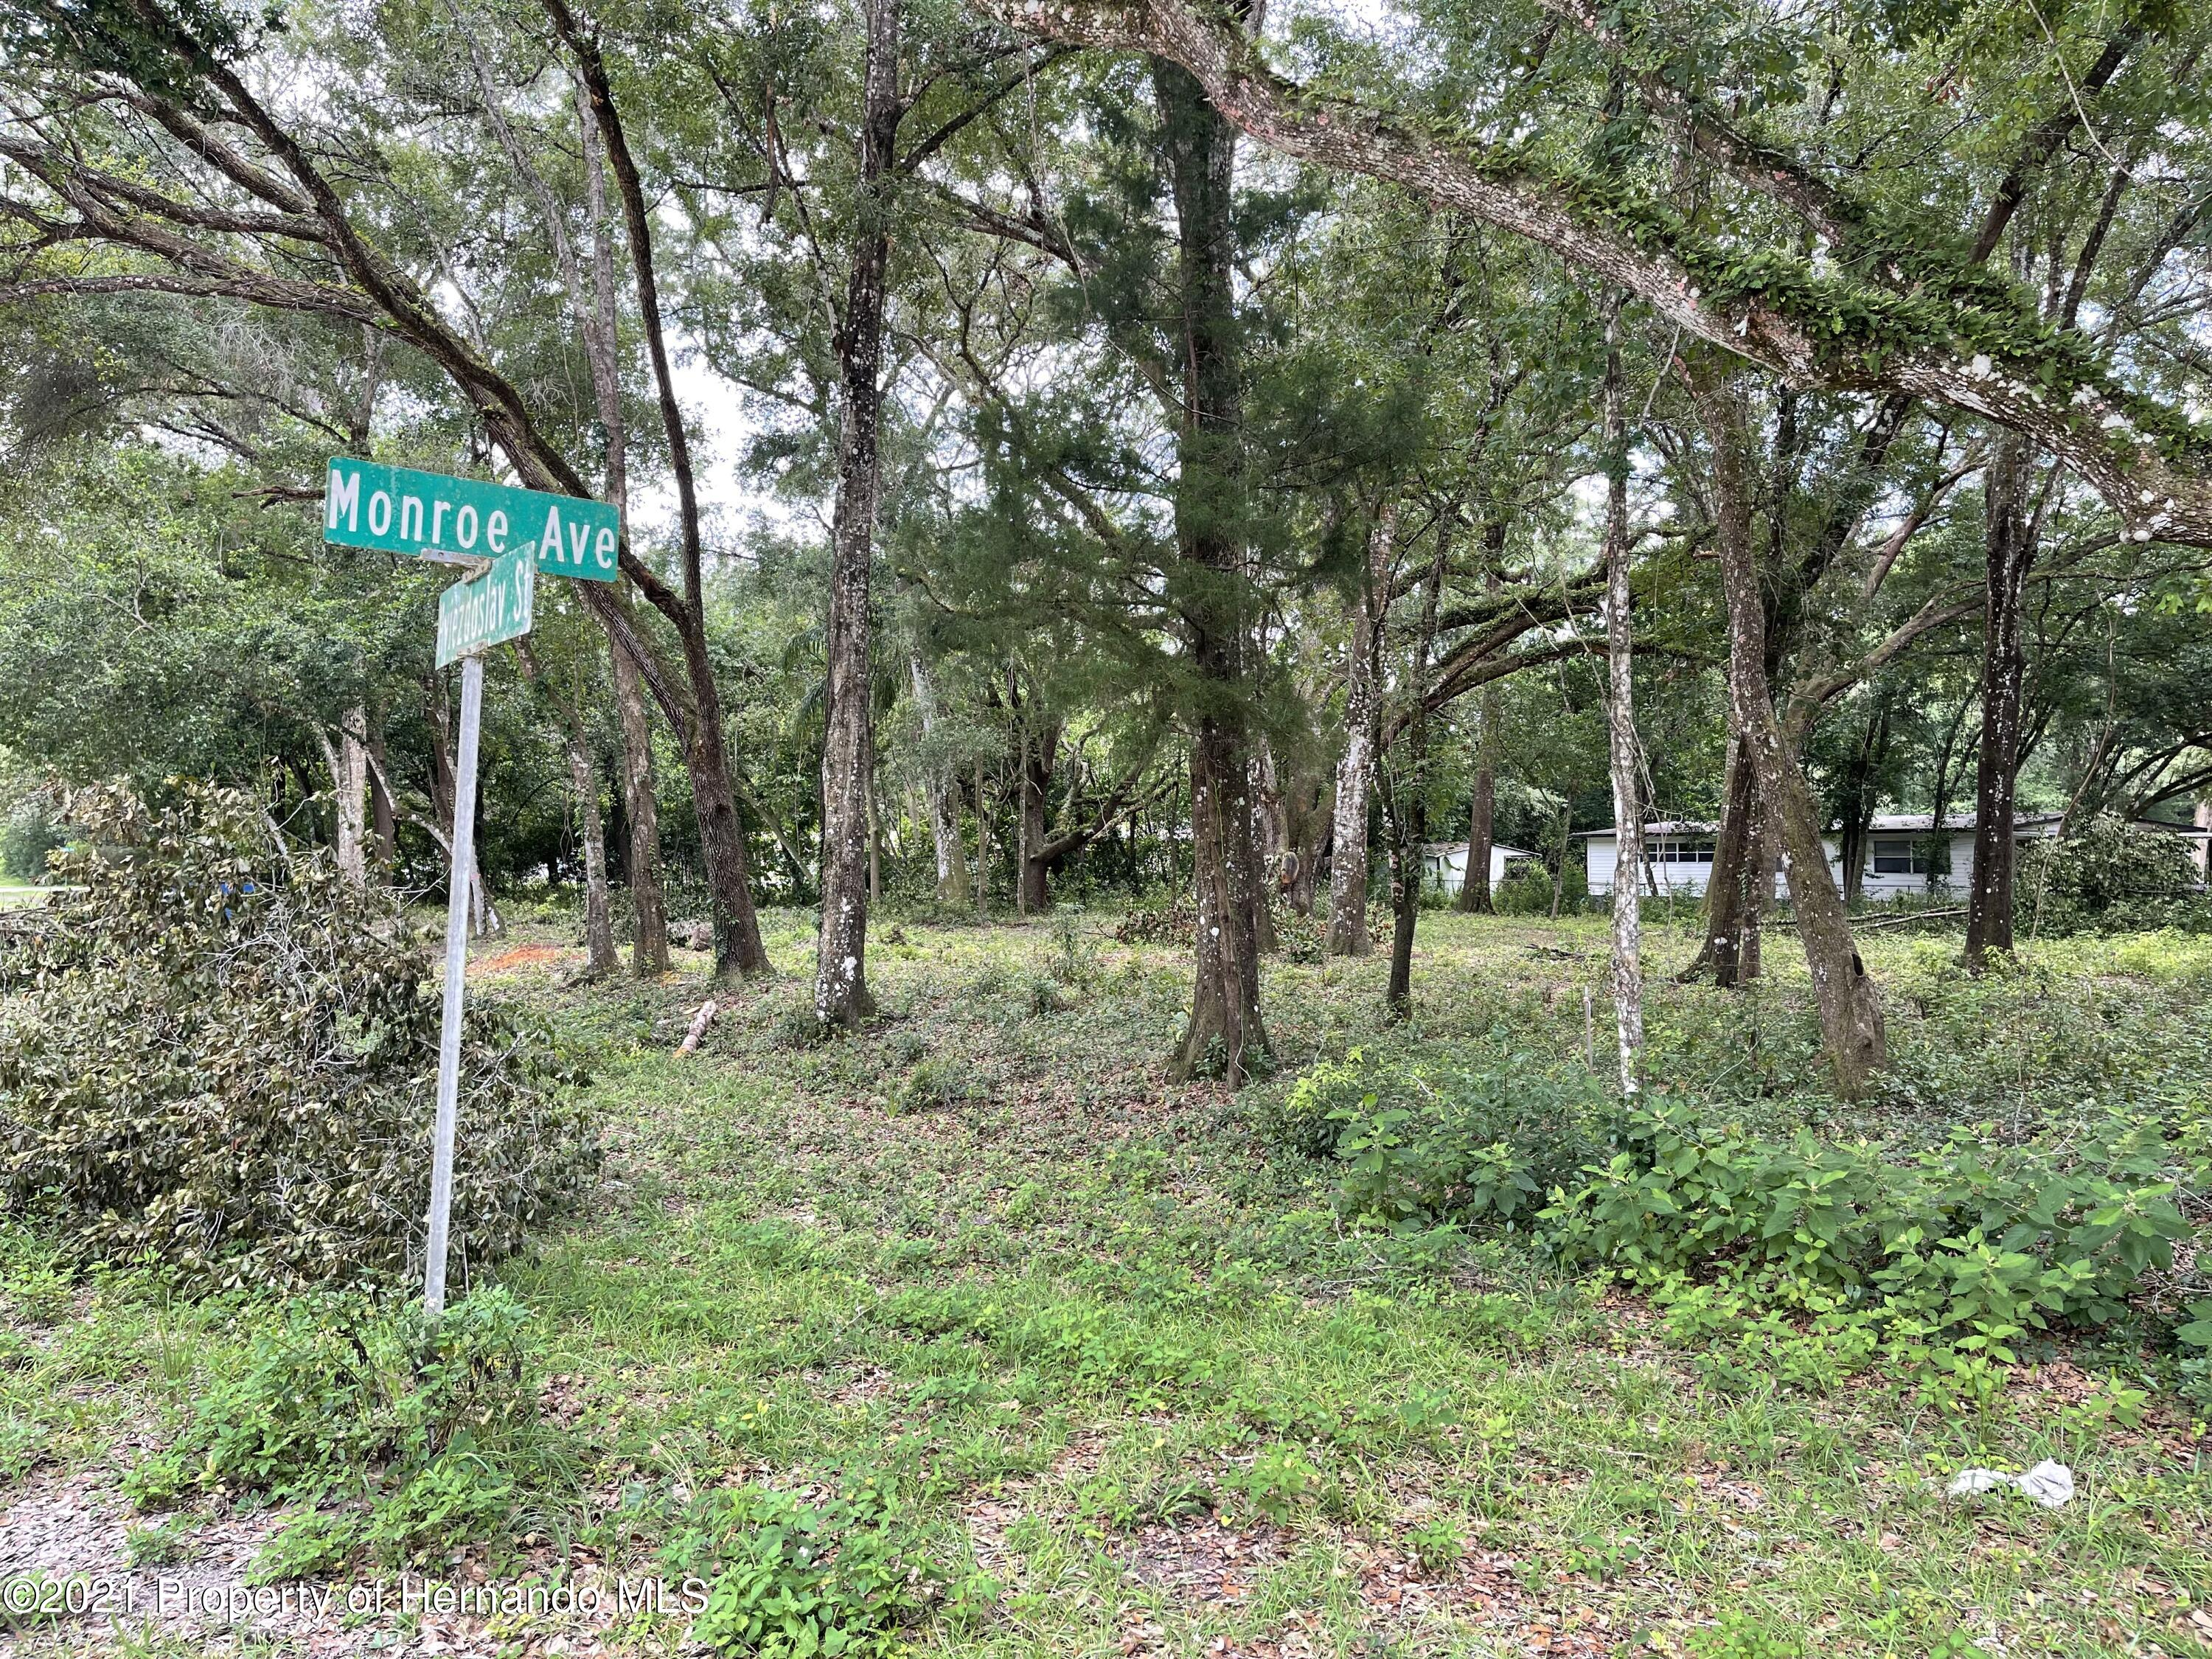 Details for 0 Monroe Ave Lot 11 & 12, Masaryktown, FL 34604